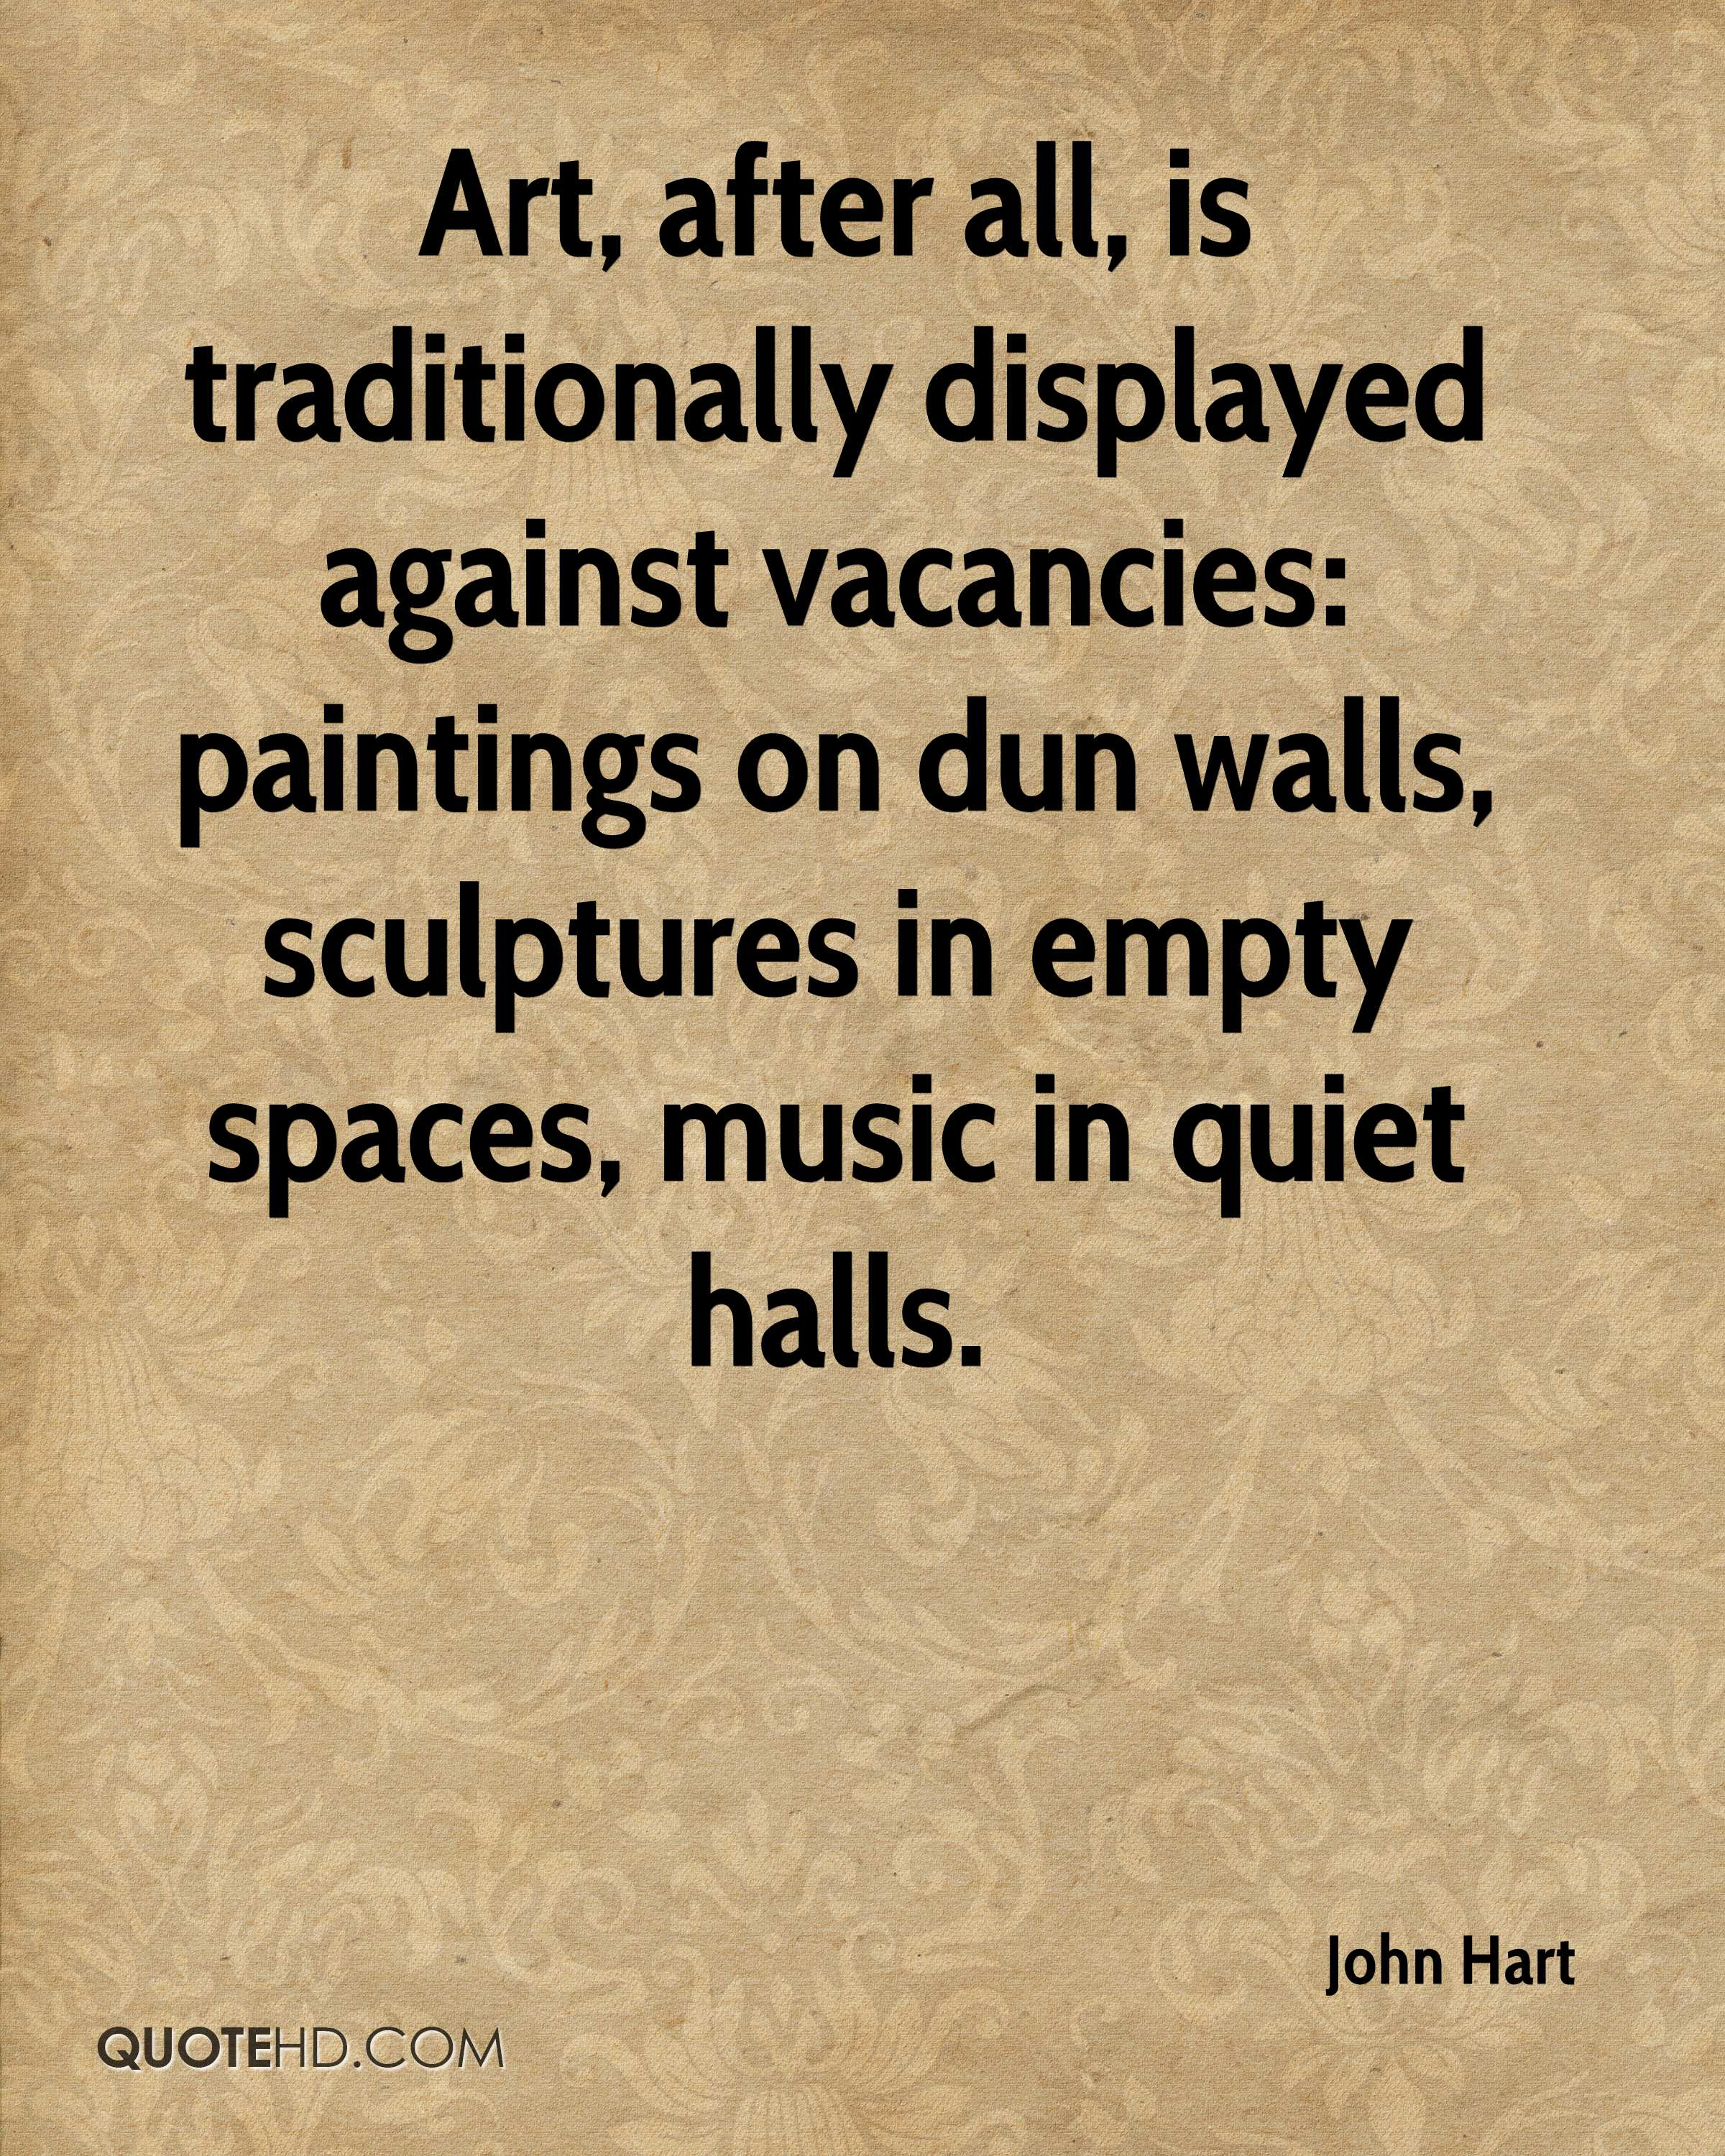 Art, after all, is traditionally displayed against vacancies: paintings on dun walls, sculptures in empty spaces, music in quiet halls.